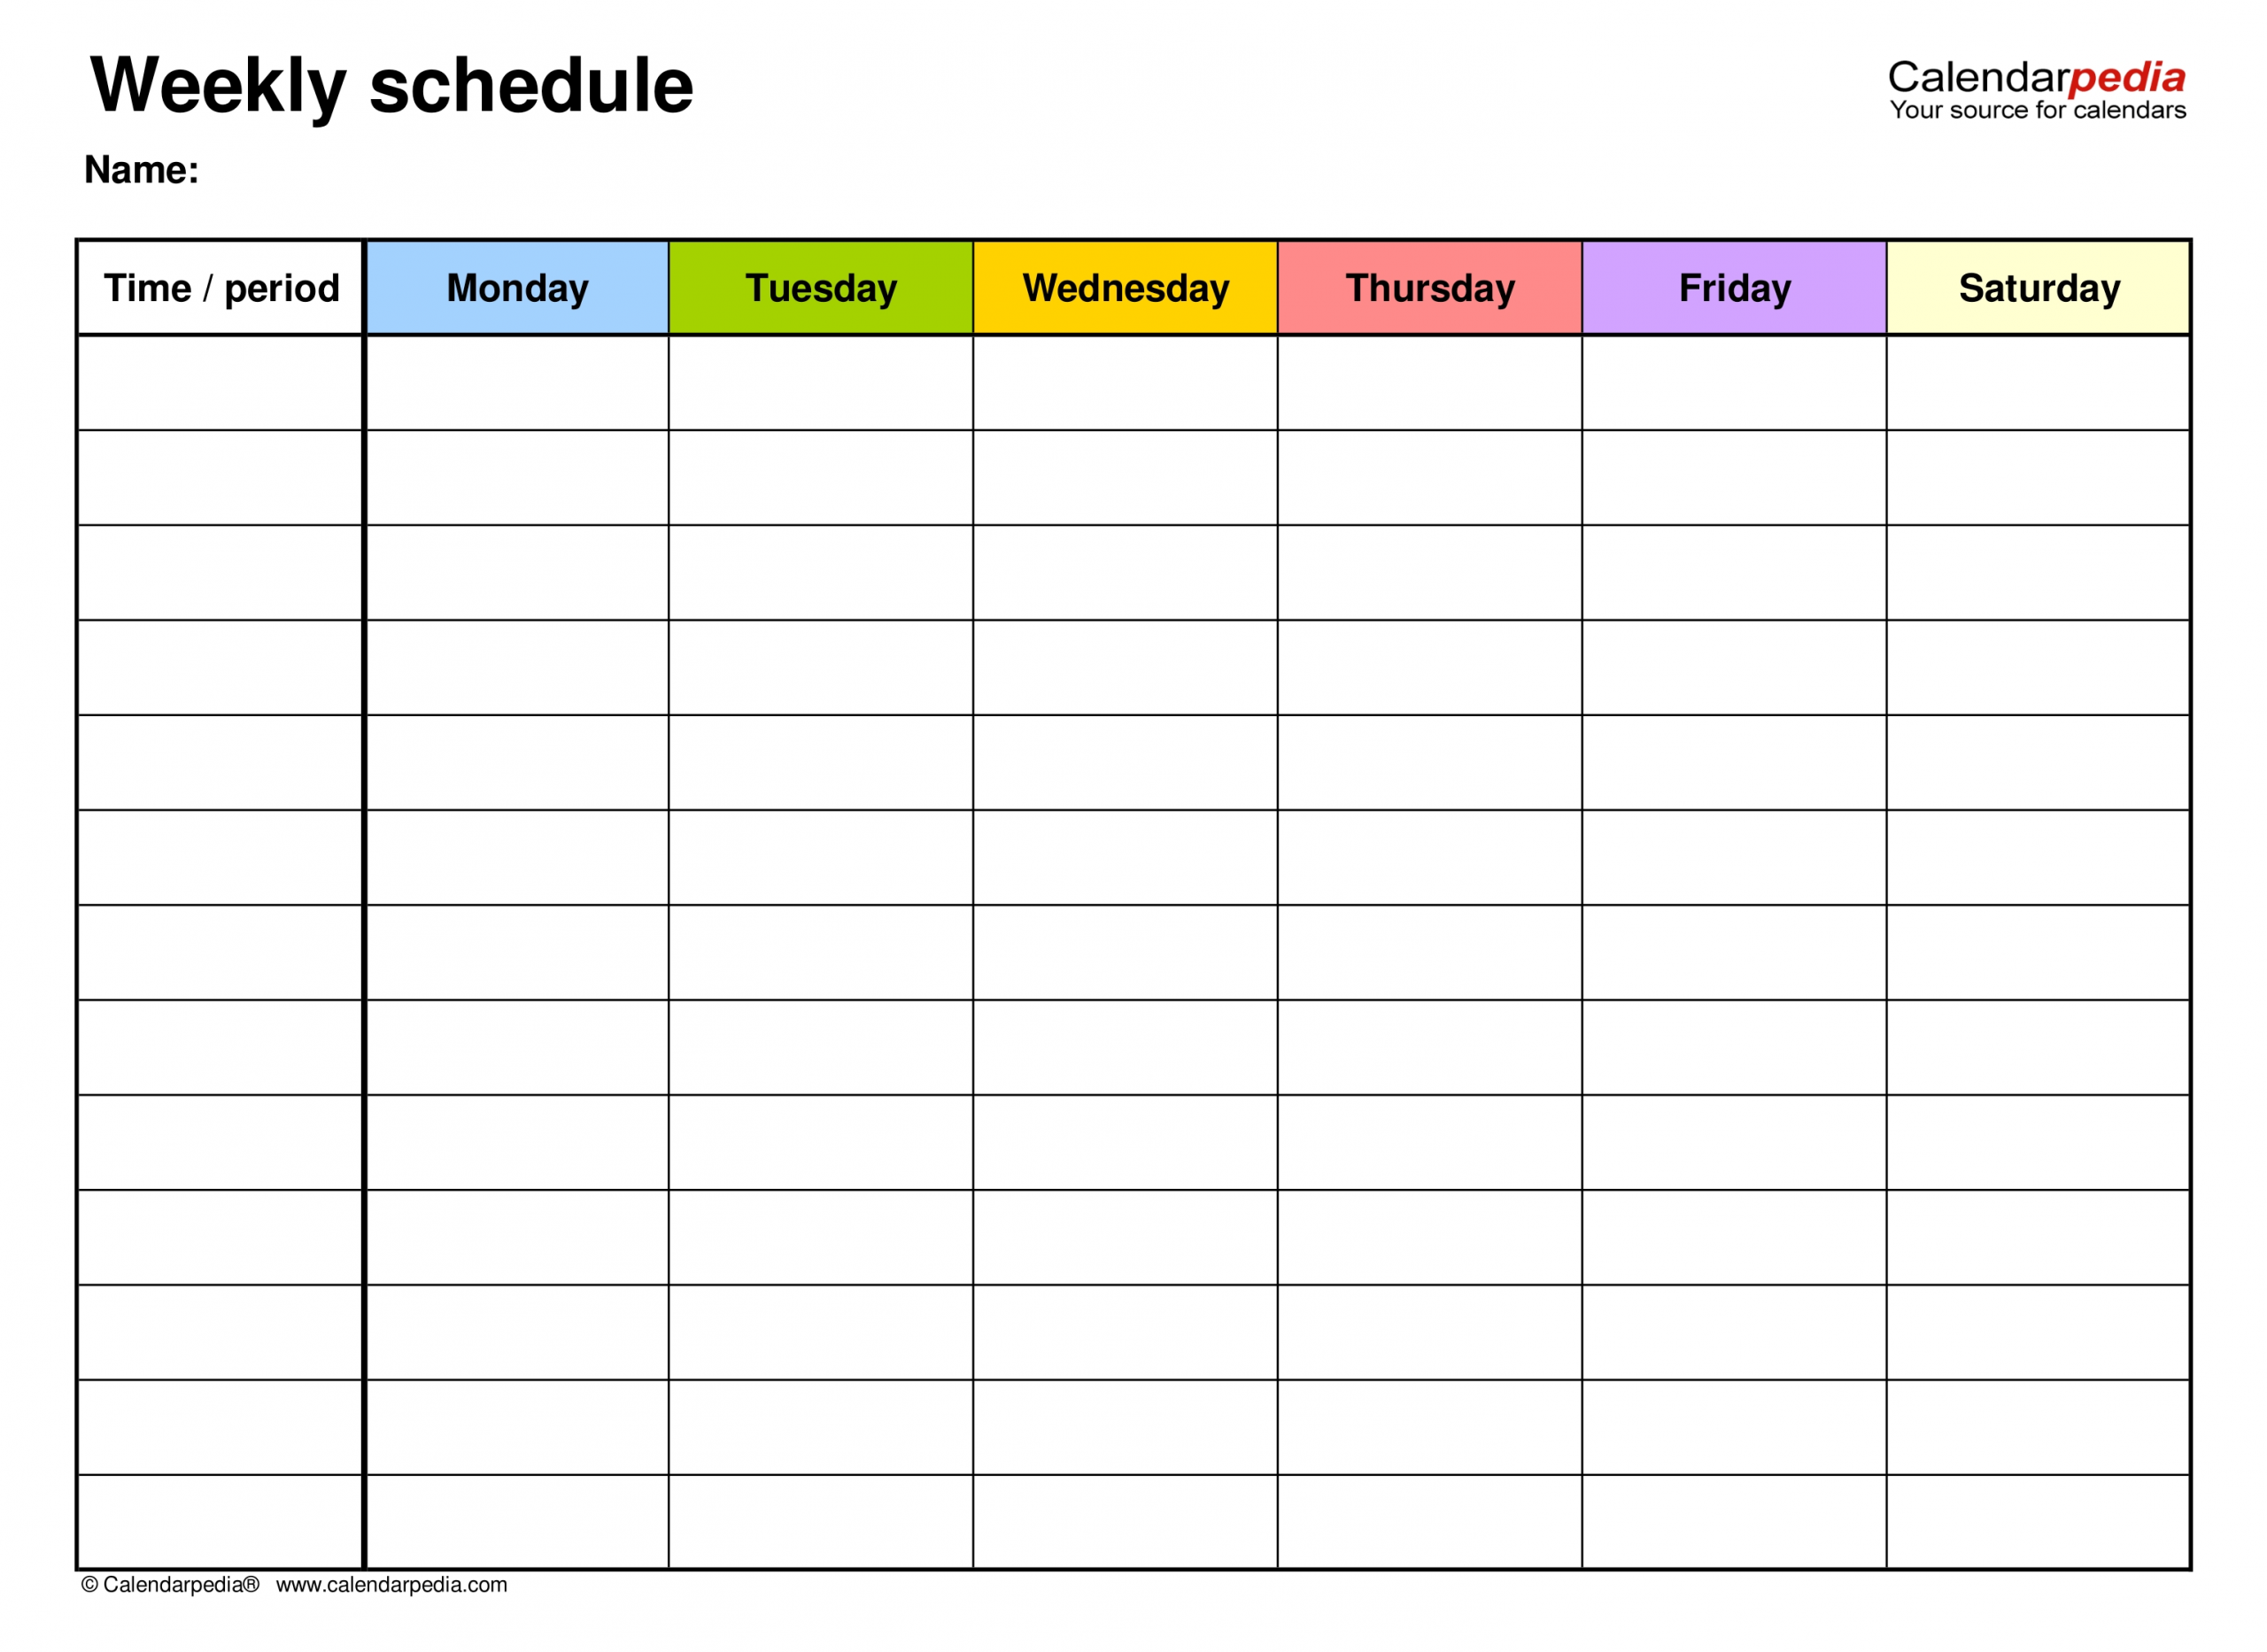 Free Weekly Schedule Templates For Pdf - 18 Templates